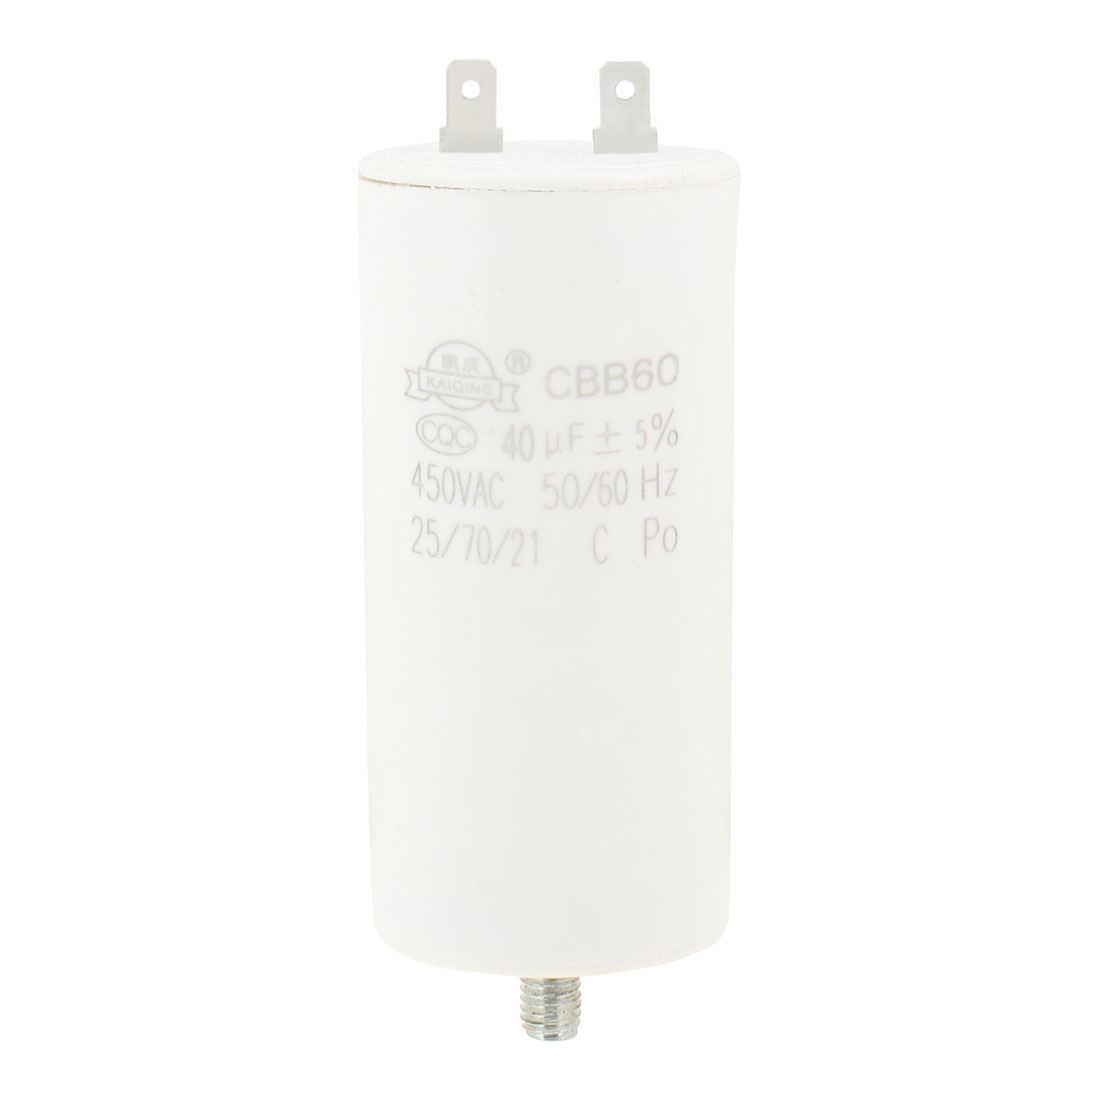 Air Compressor Polypropylene Film Capacitor AC 450V 50/60Hz 40uF 8mm Thread